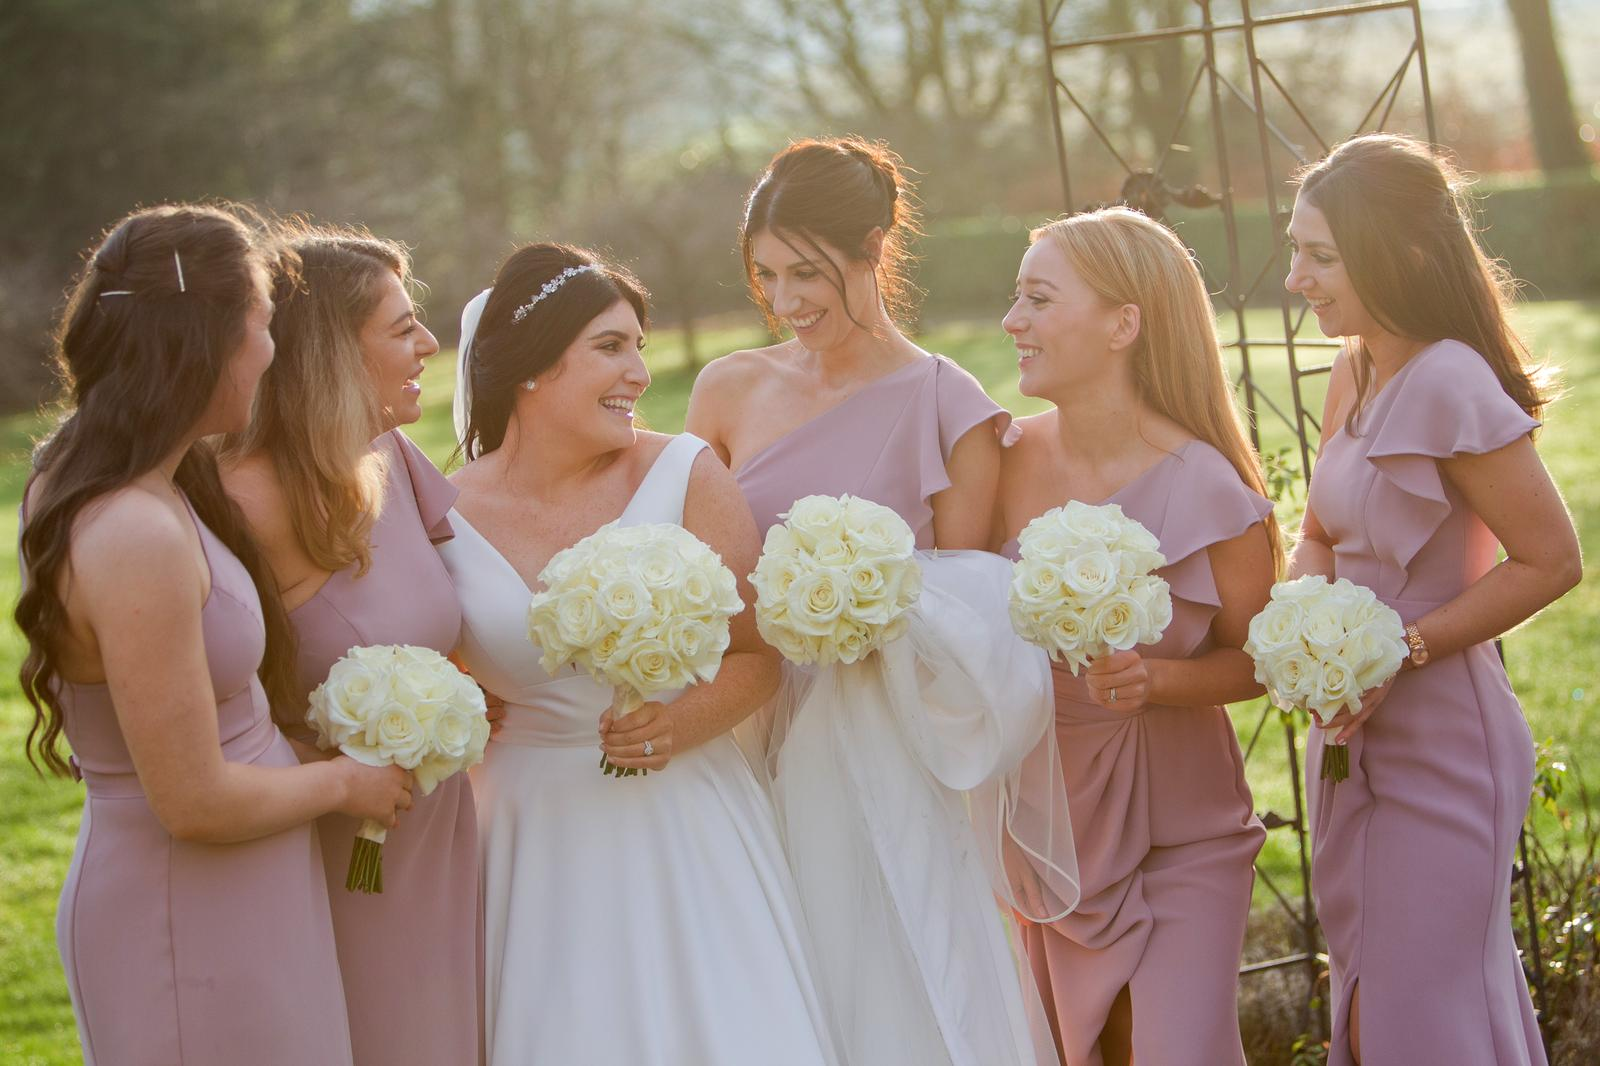 Bridal party bouquets of white roses